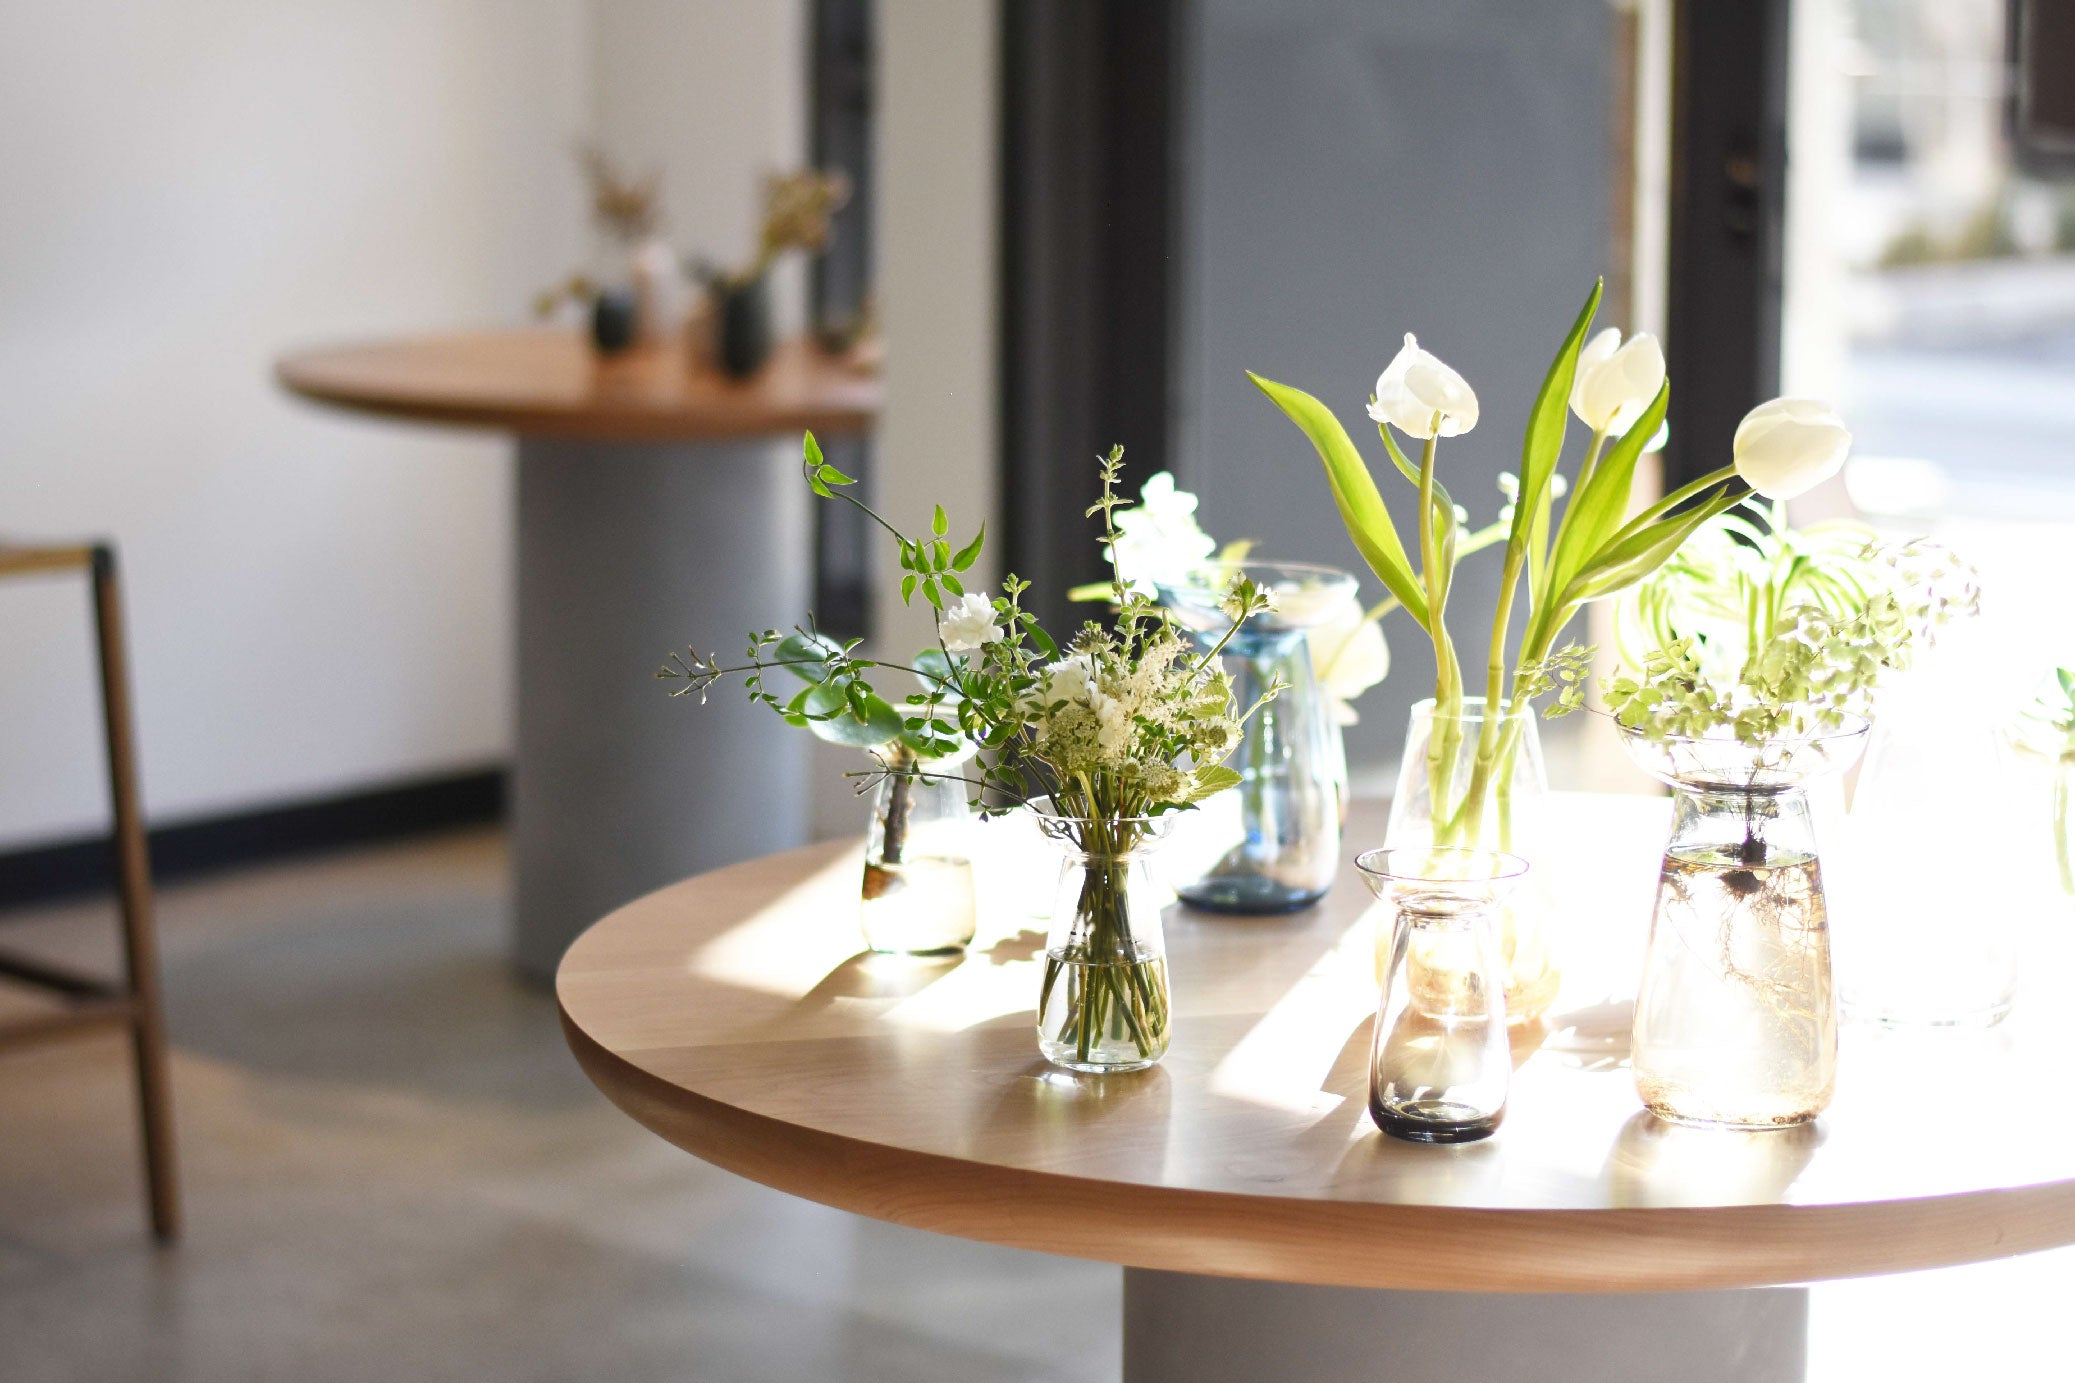 Assortment of flowers in AQUA CULTURE VASES on display table